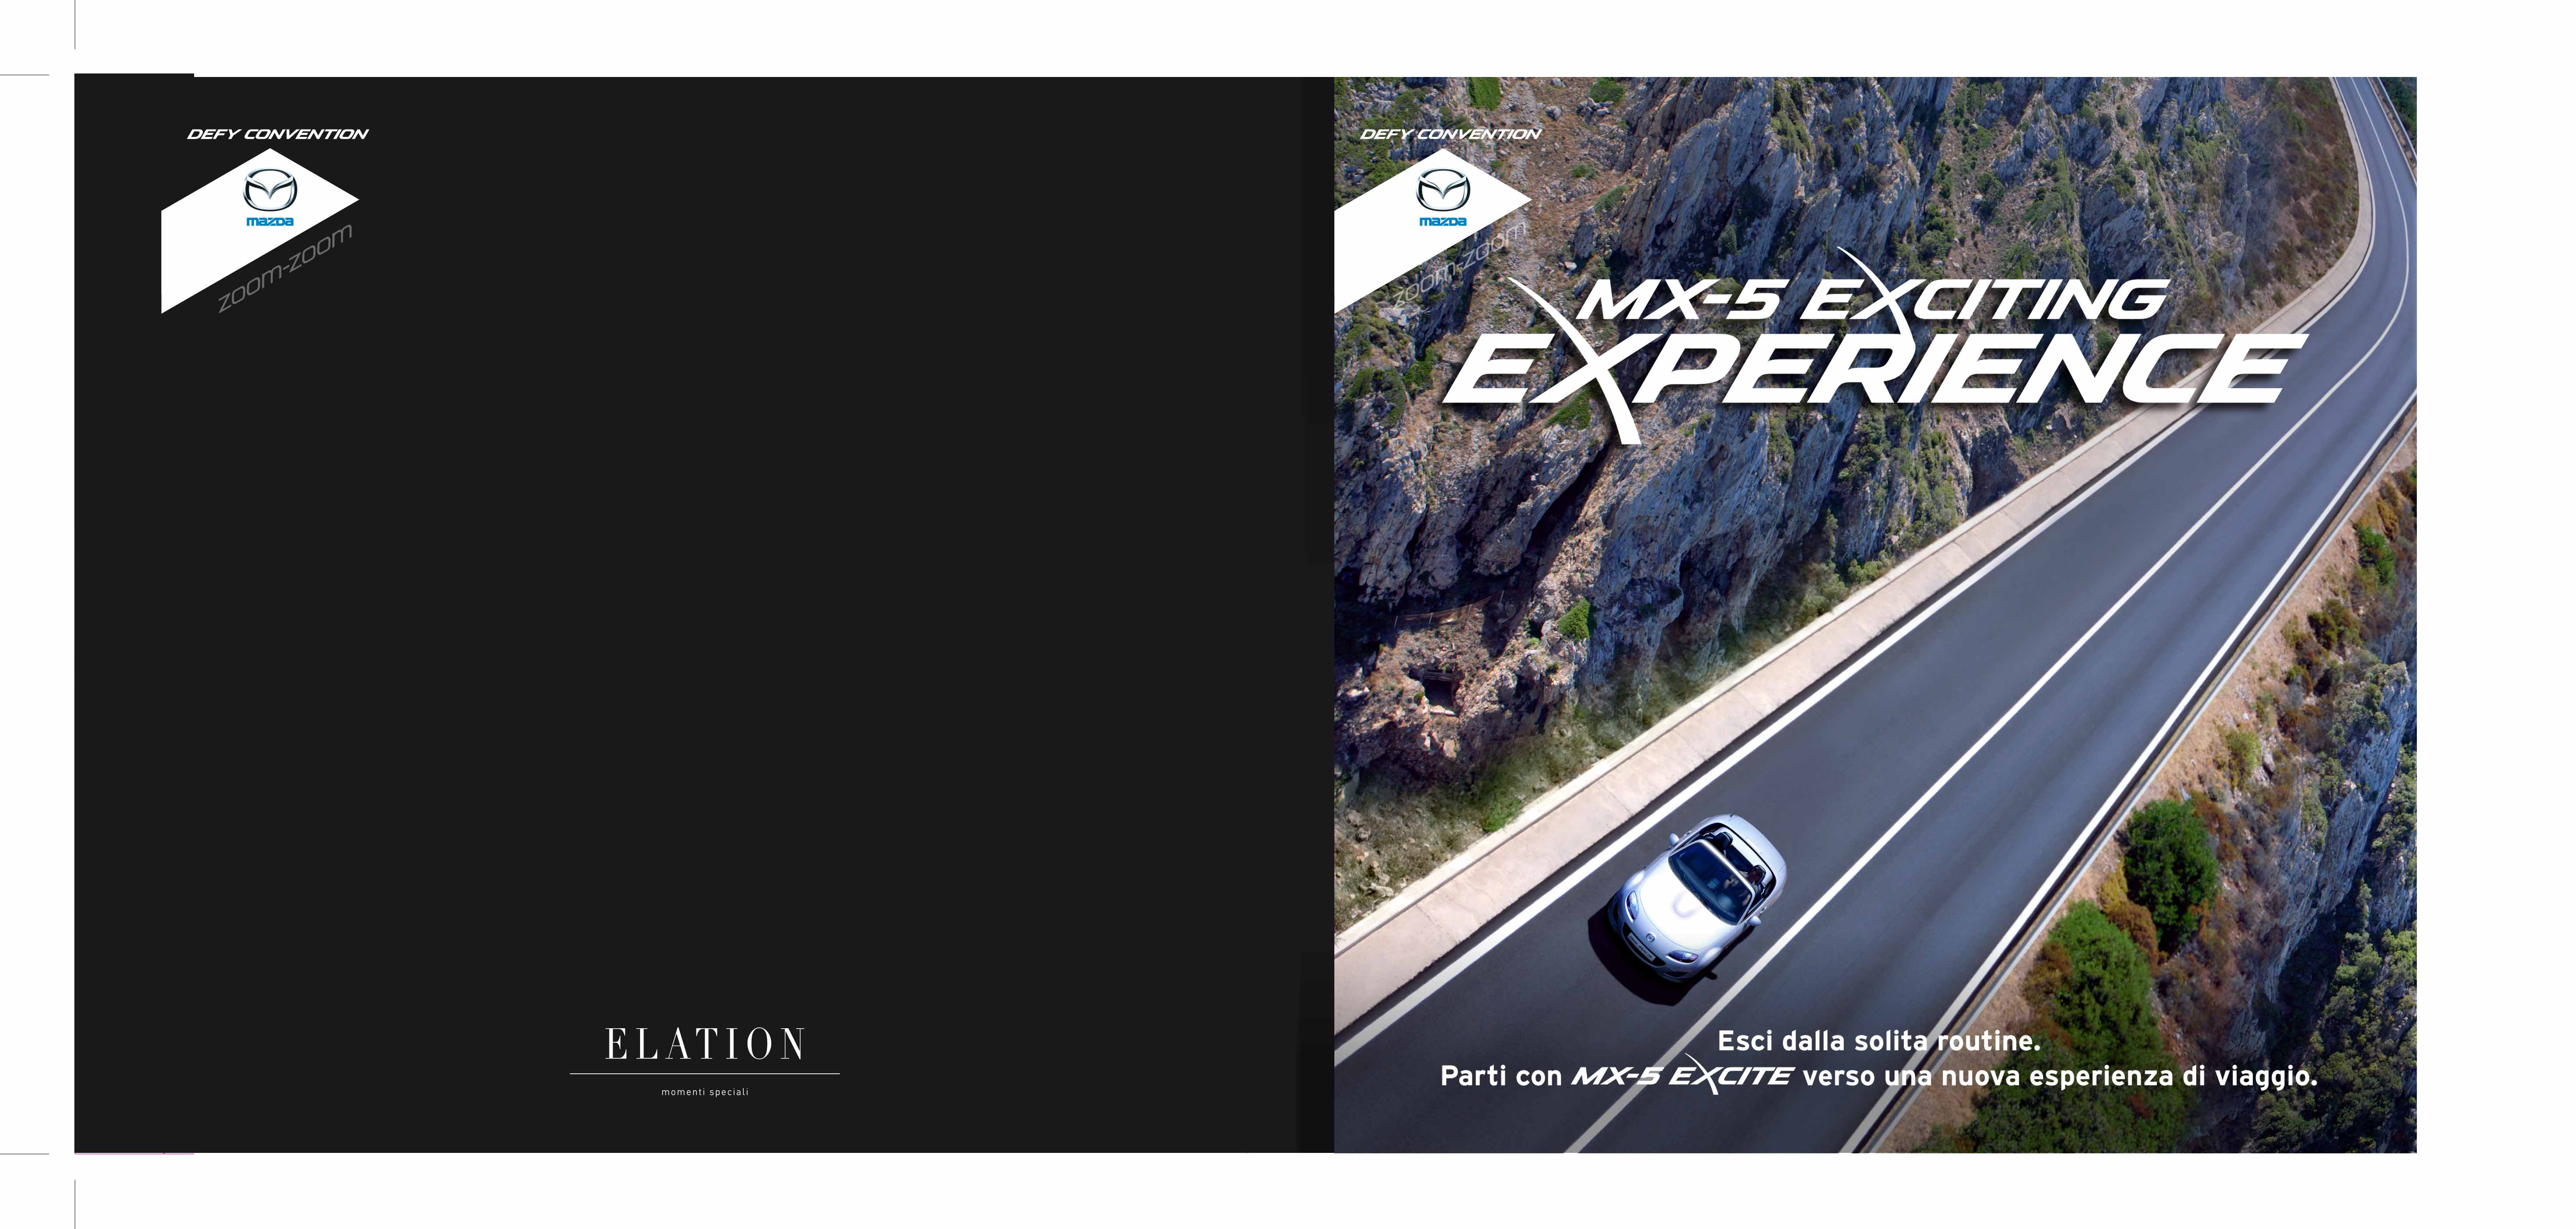 Mazda Exciting Experience